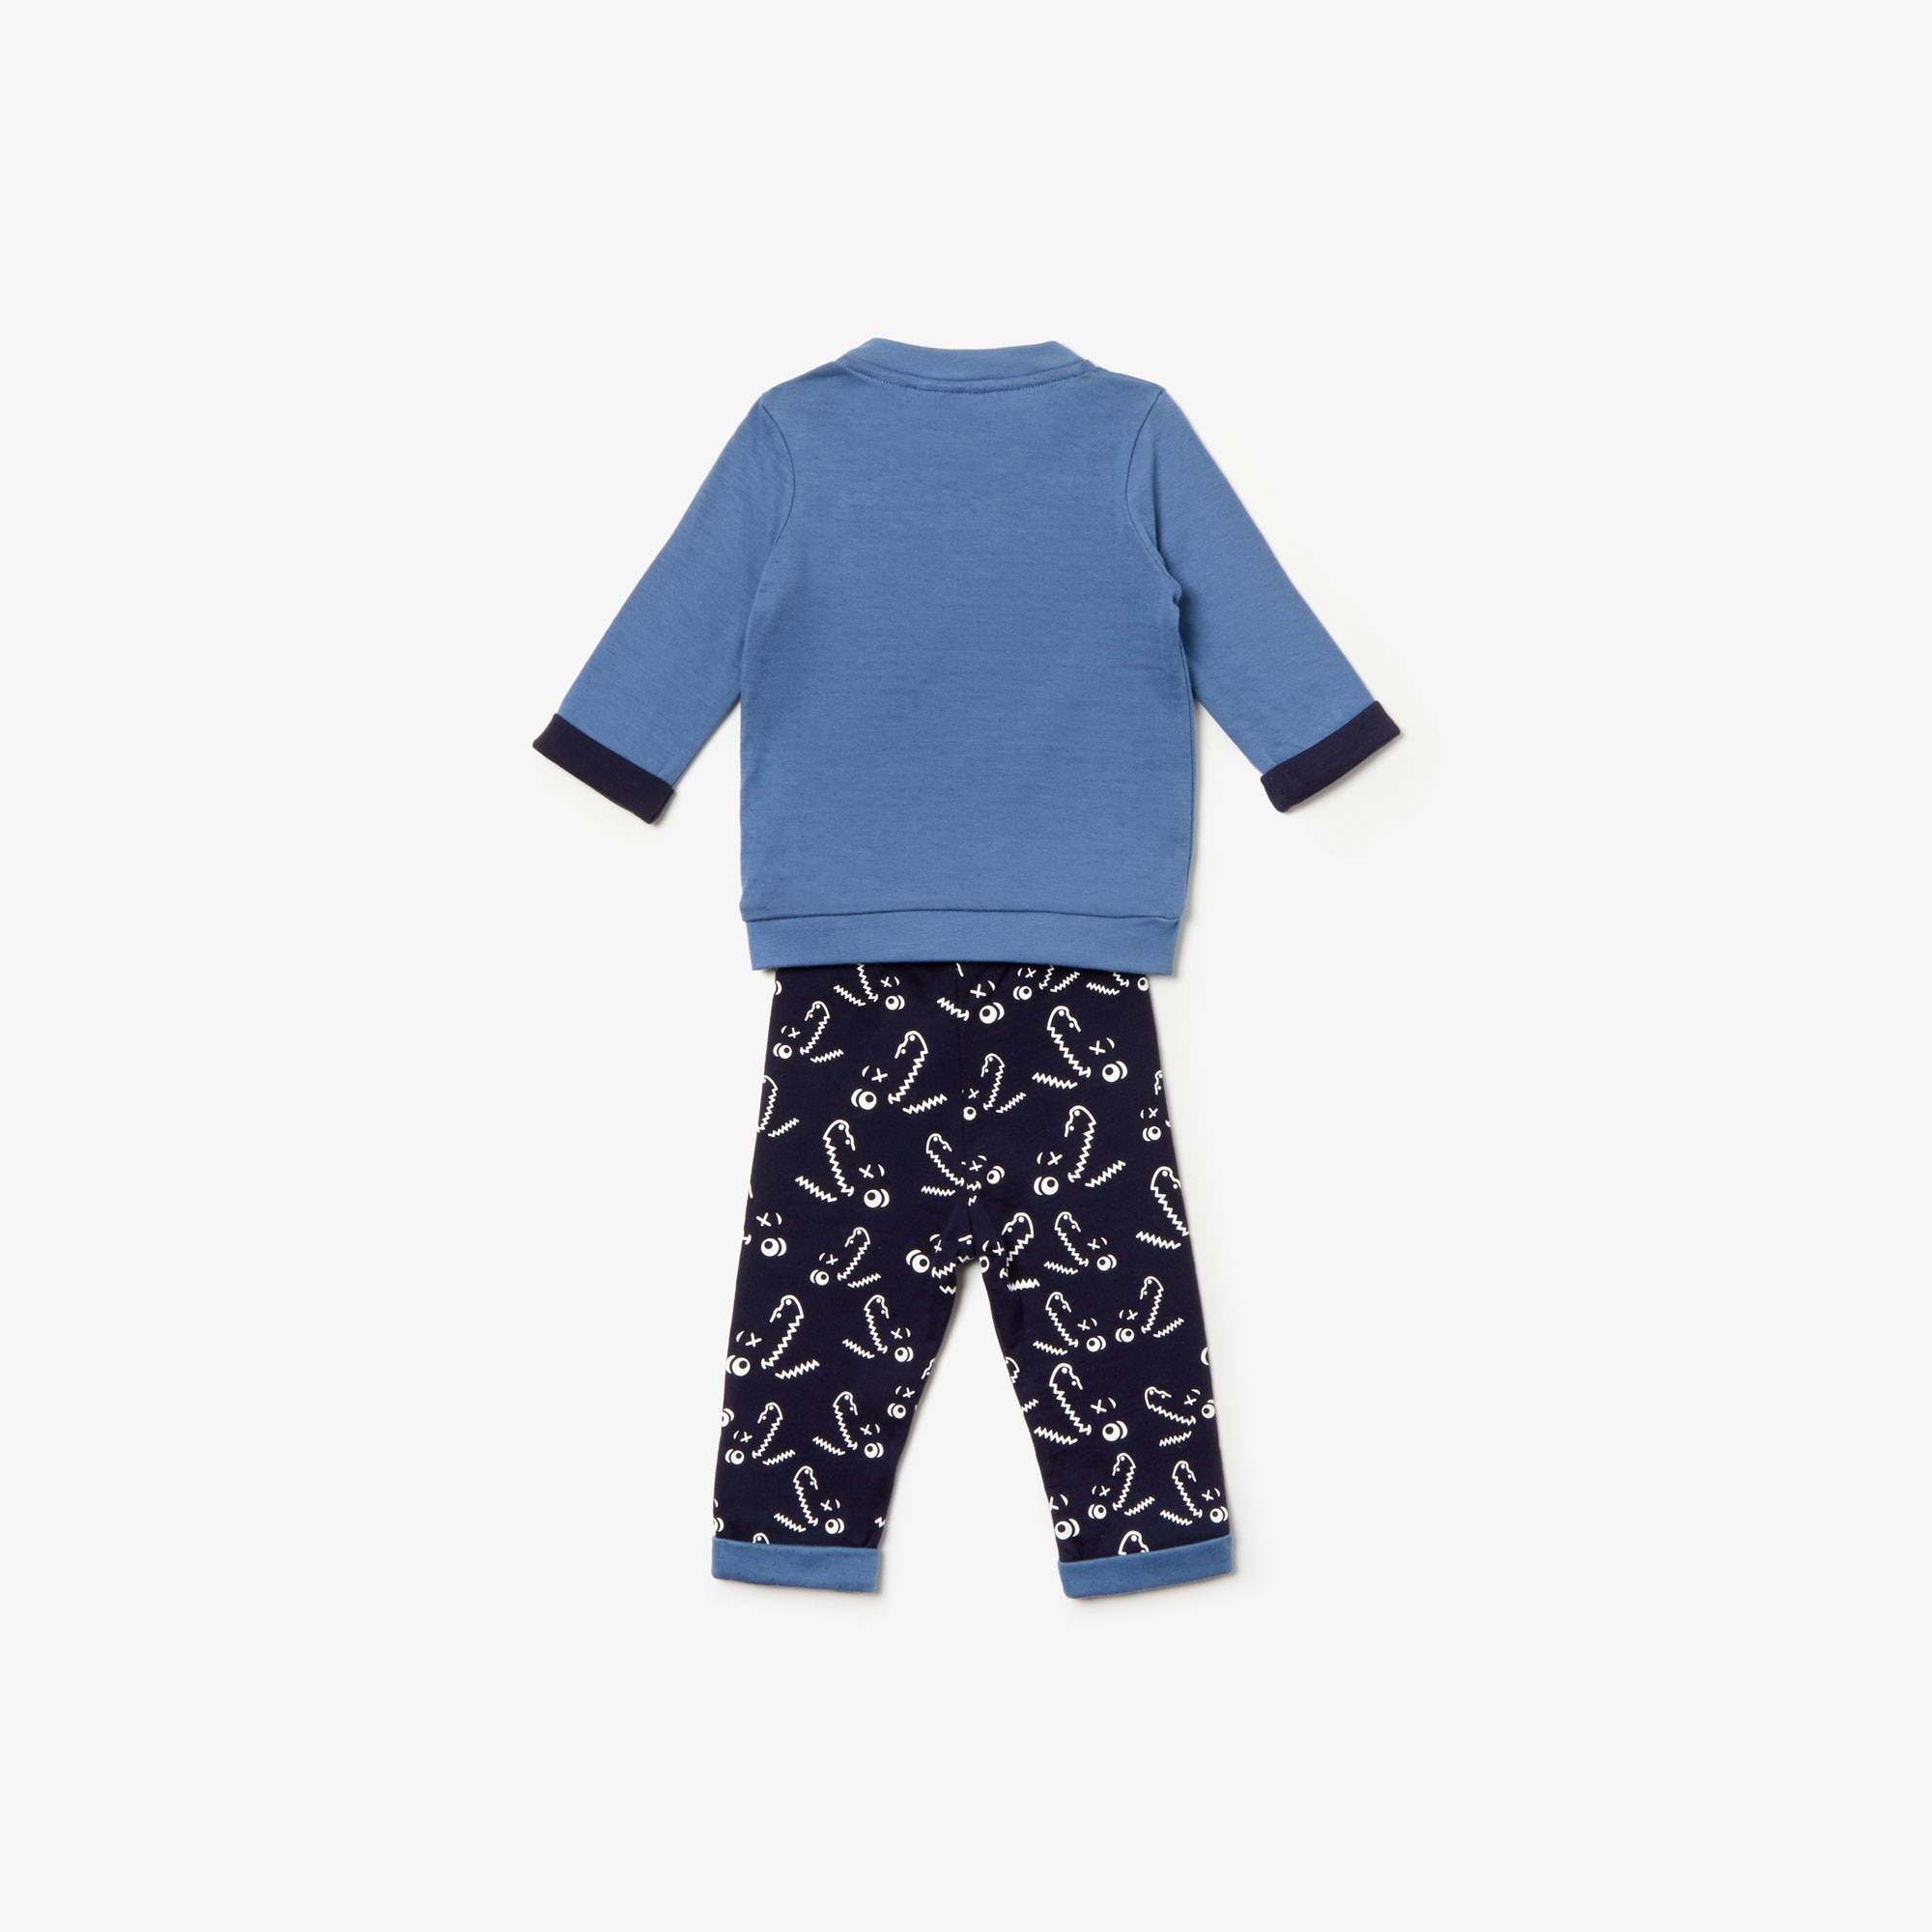 Baby Boys' T-shirt And Printed Pants Pajama Gift Set